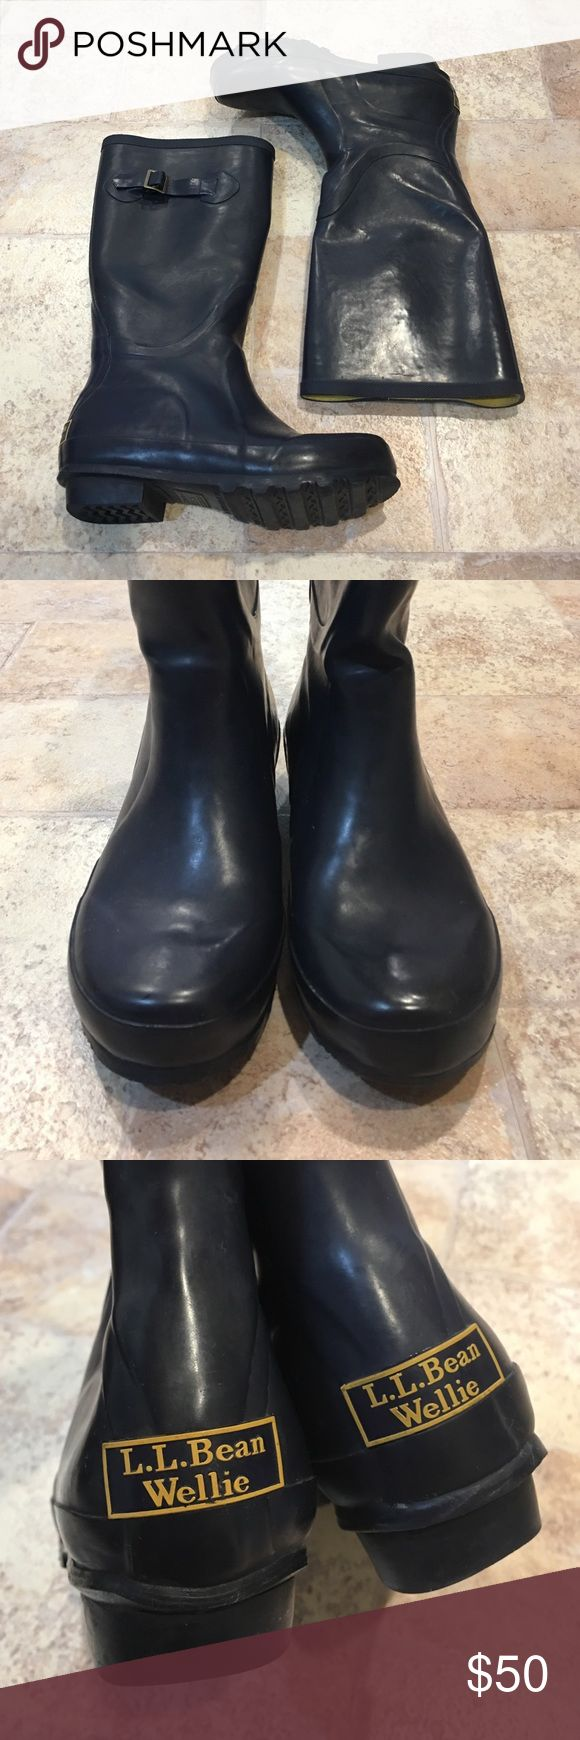 | L.L Bean | Navy Wellie Rain Boots In excellent condition. Only worn a few times. Super adorable and perfect for those rainy days, fall and winter! L.L. Bean Shoes Winter & Rain Boots